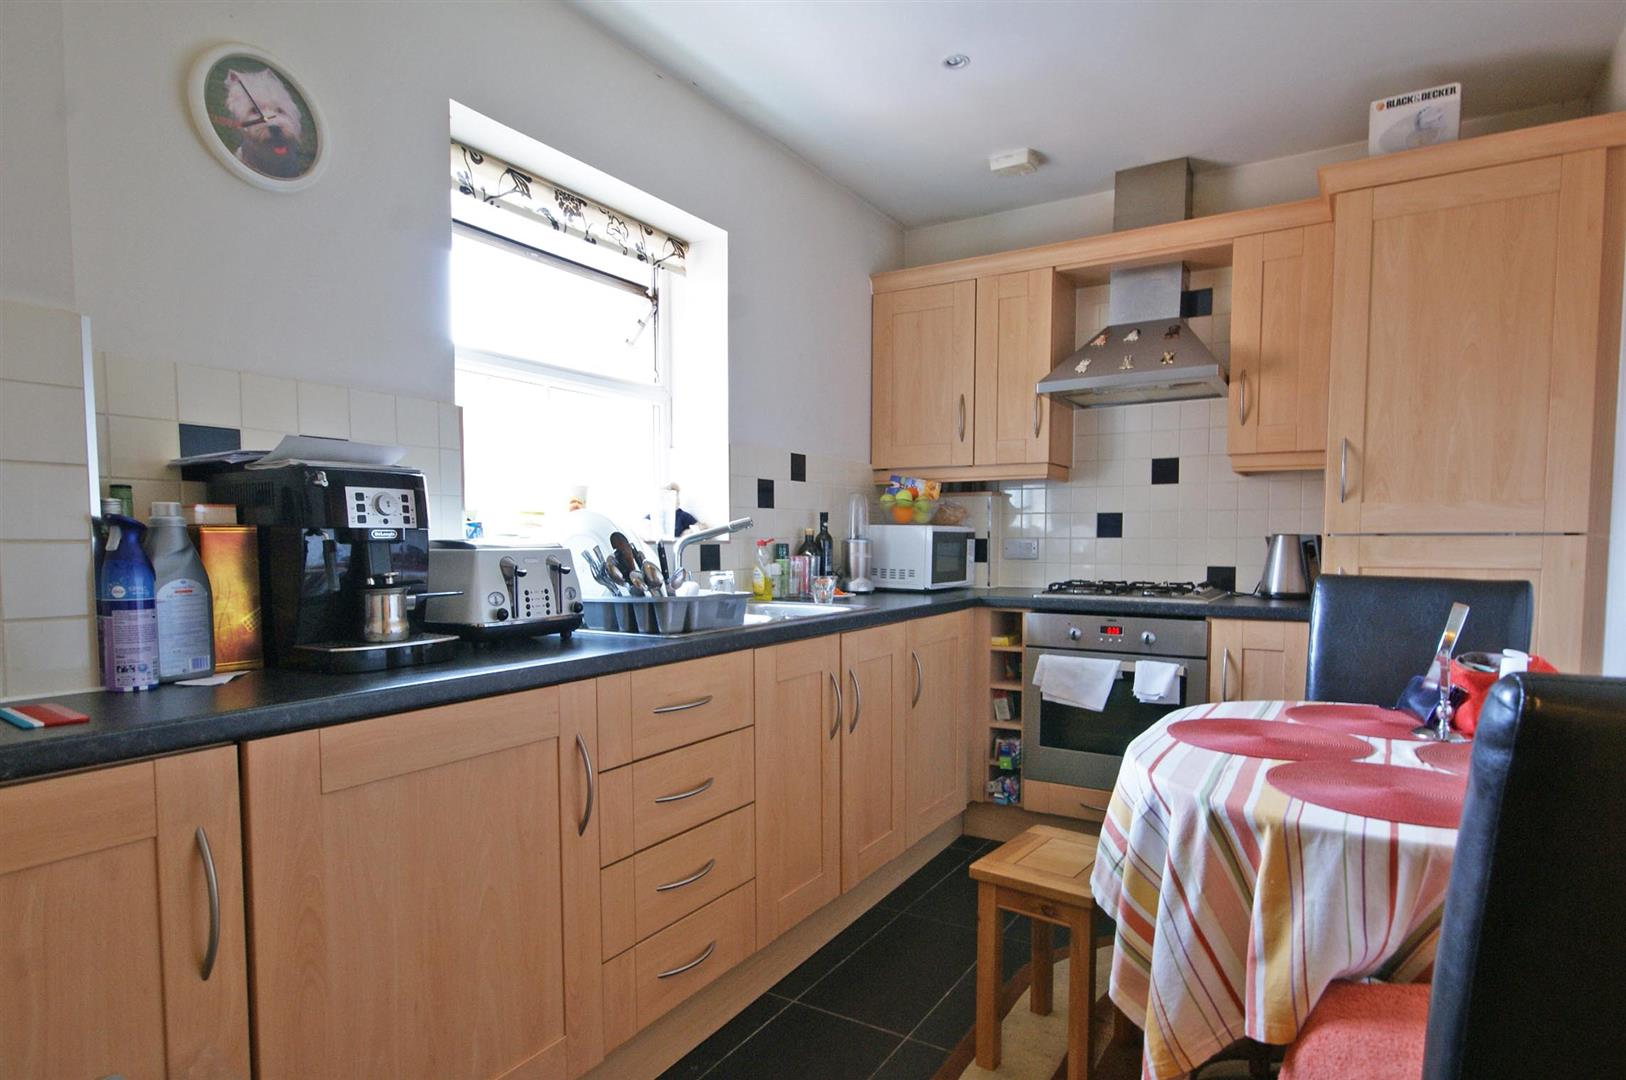 Table Top Dishwasher Redhill : Brook Road, Redhill, RH1 , 1 bed, Type unknown, RH1 6BQ, ?204,950 ...